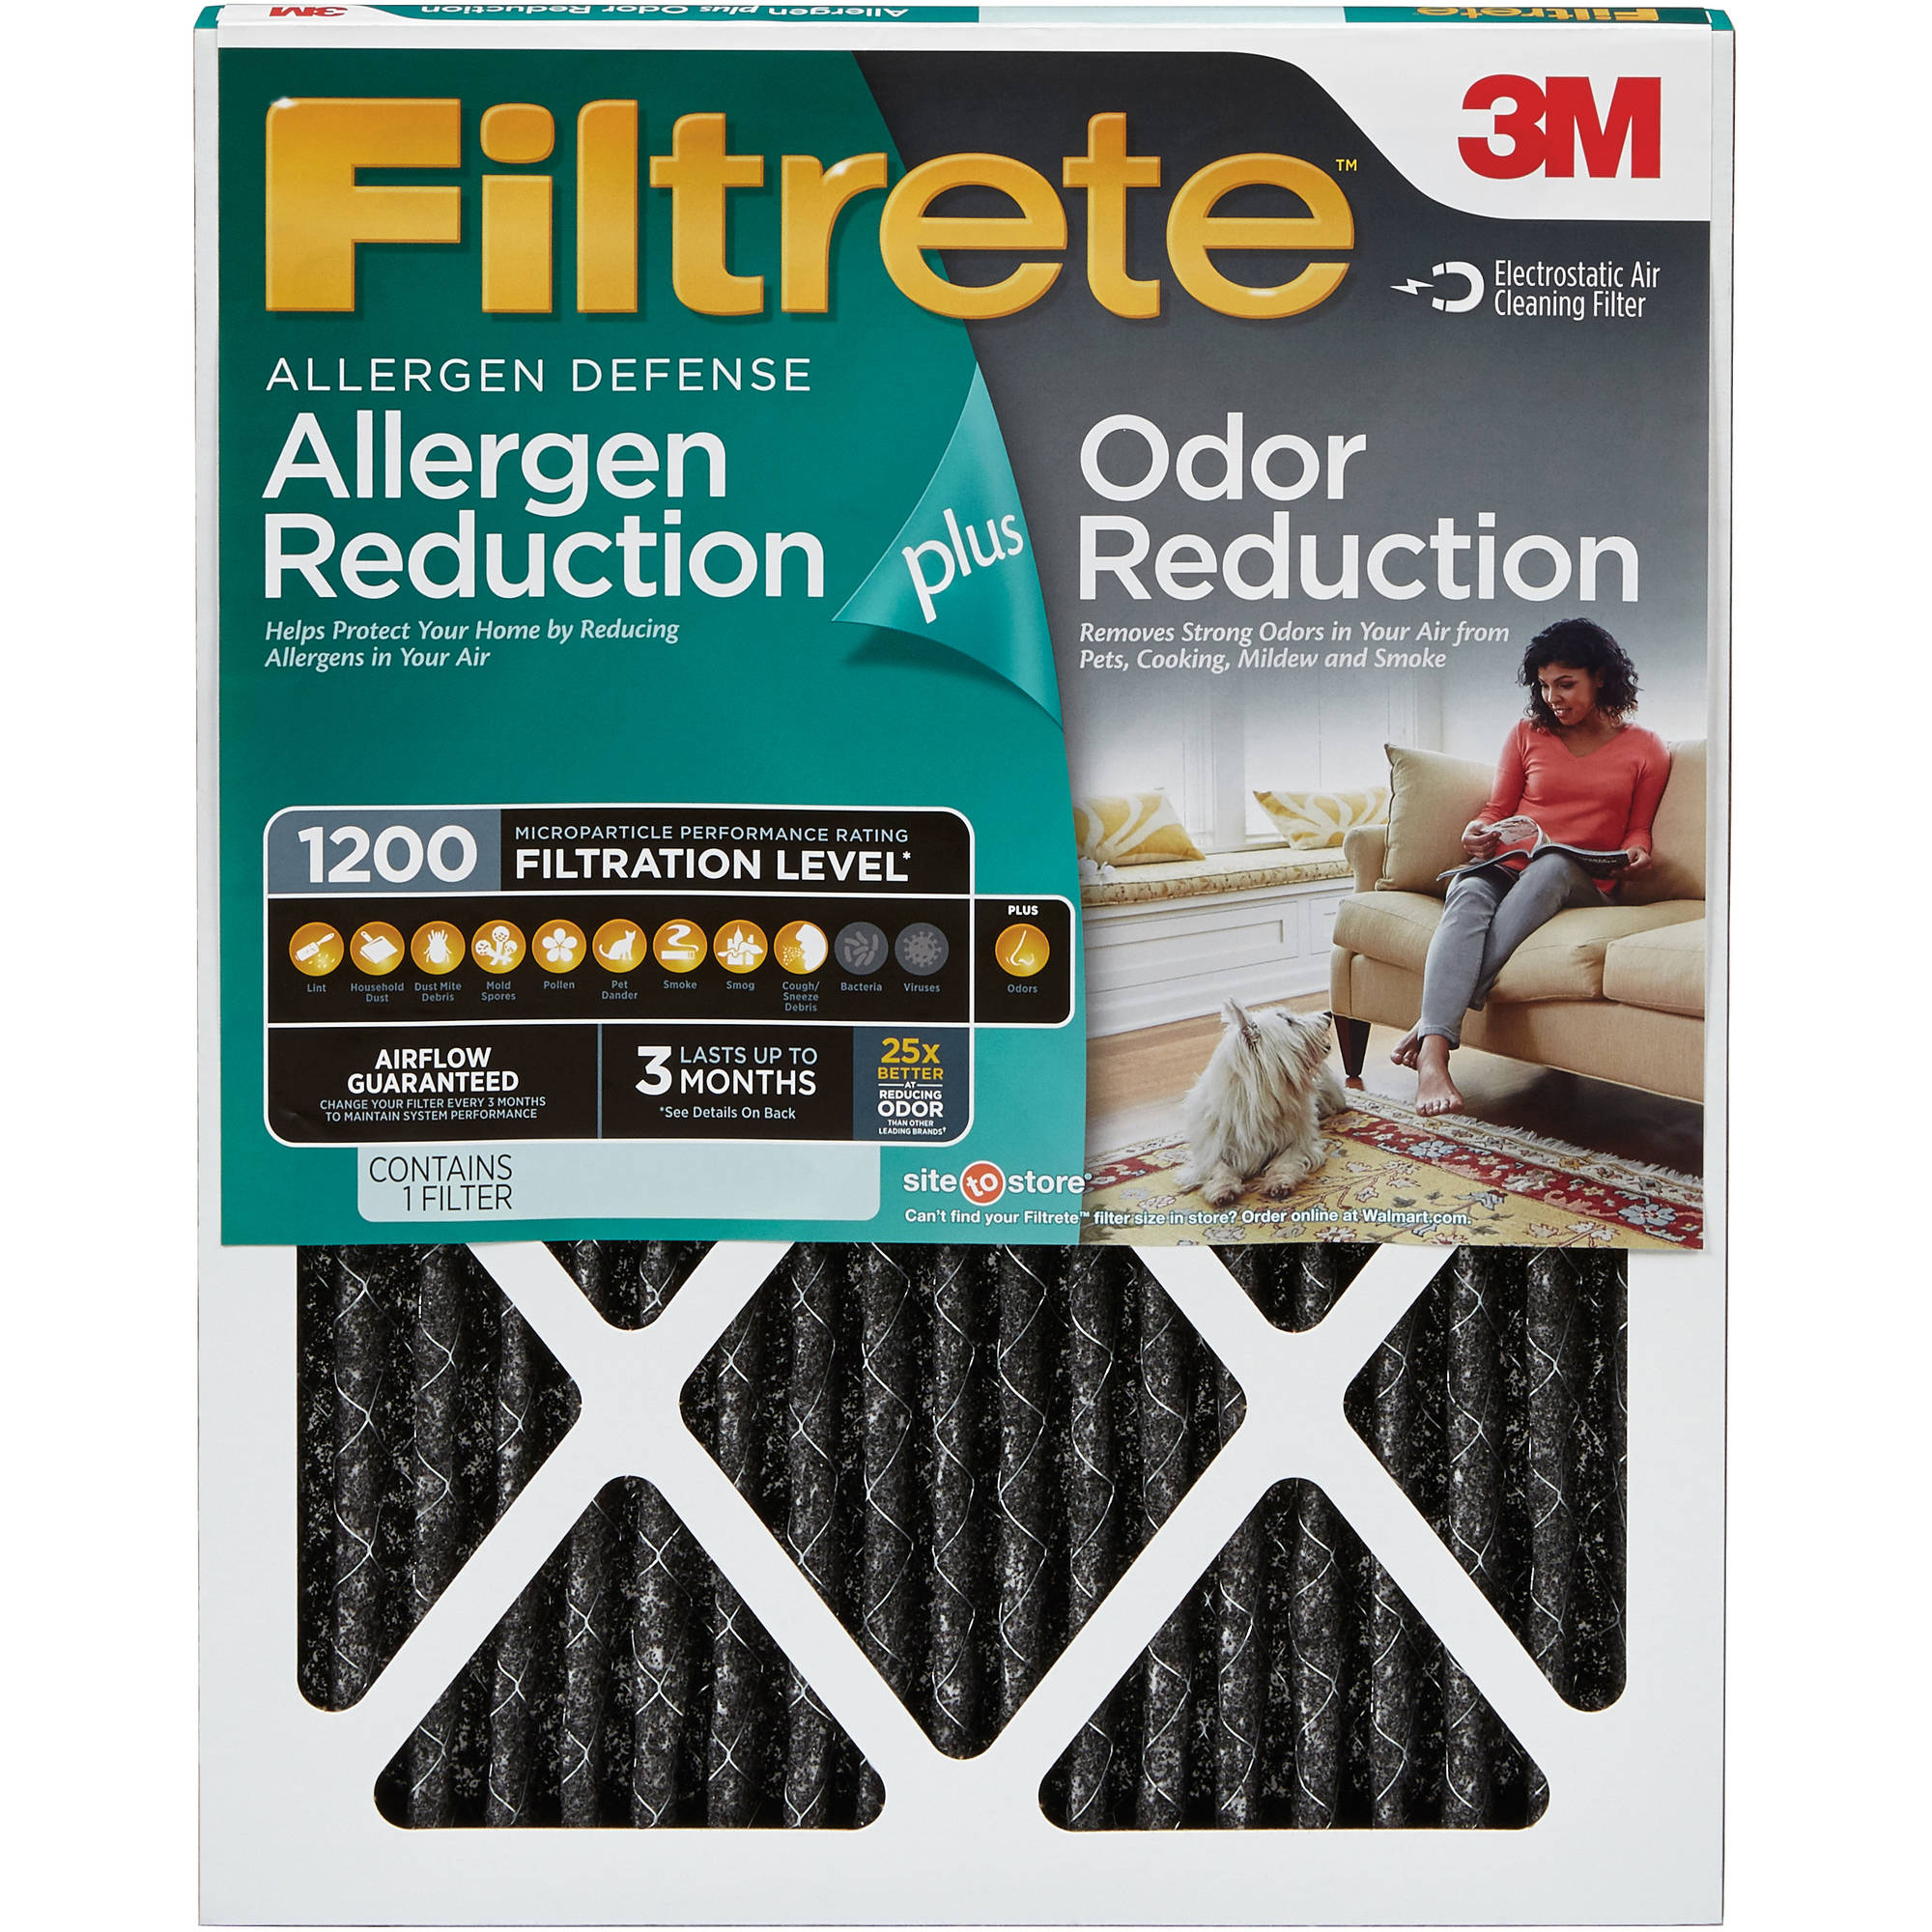 Filtrete Allergen Plus Odor Reduction HVAC Furnace Air Filter, 1200 MPR, 18 x 20 x 1, 1 Filter